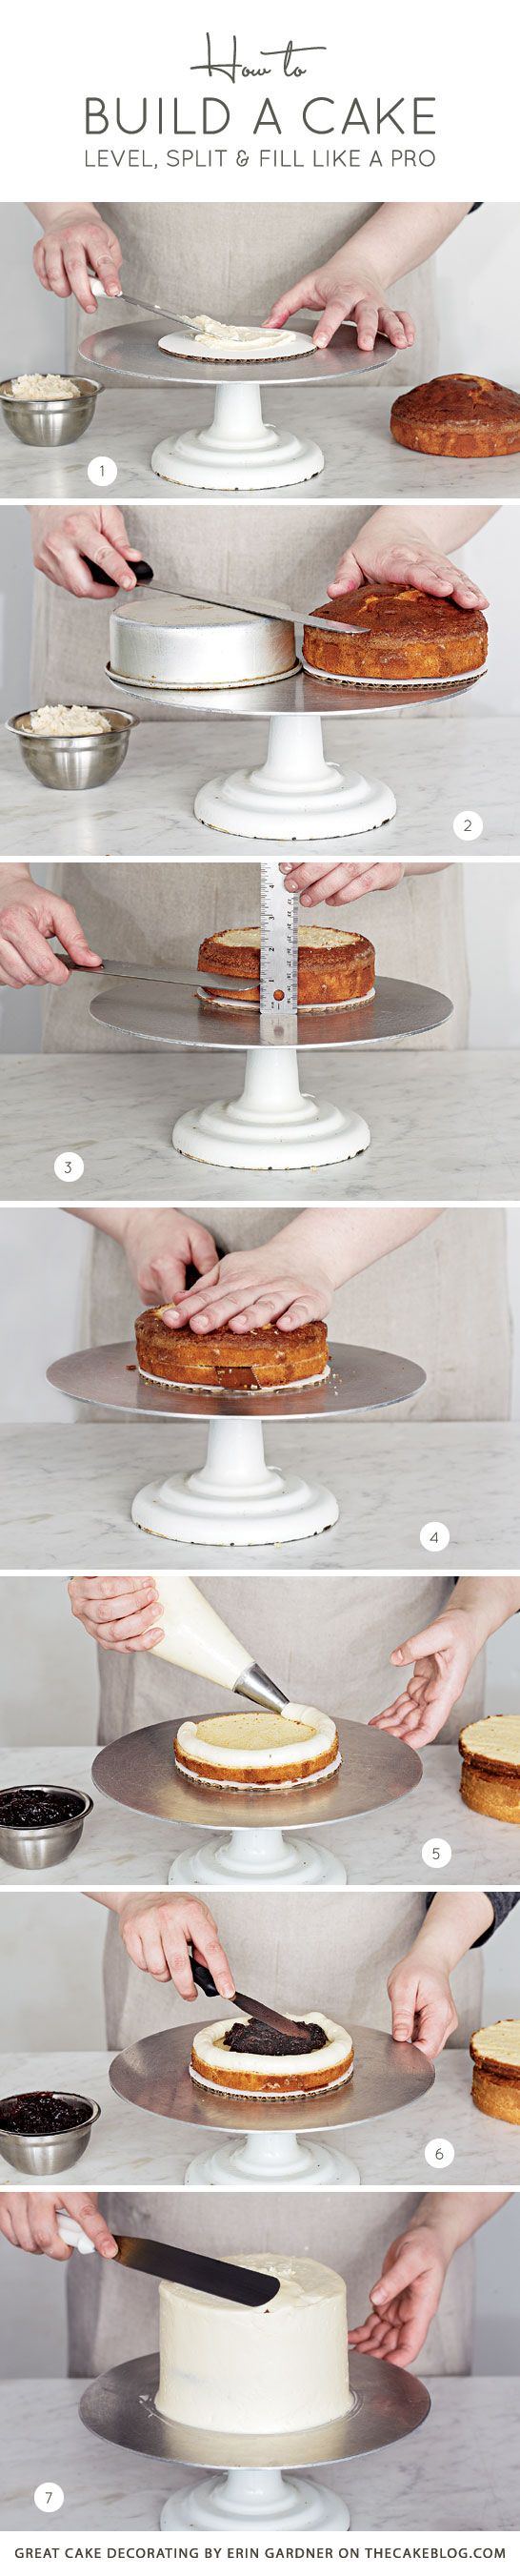 How To Build a Cake Like a Pro #cakedecorating